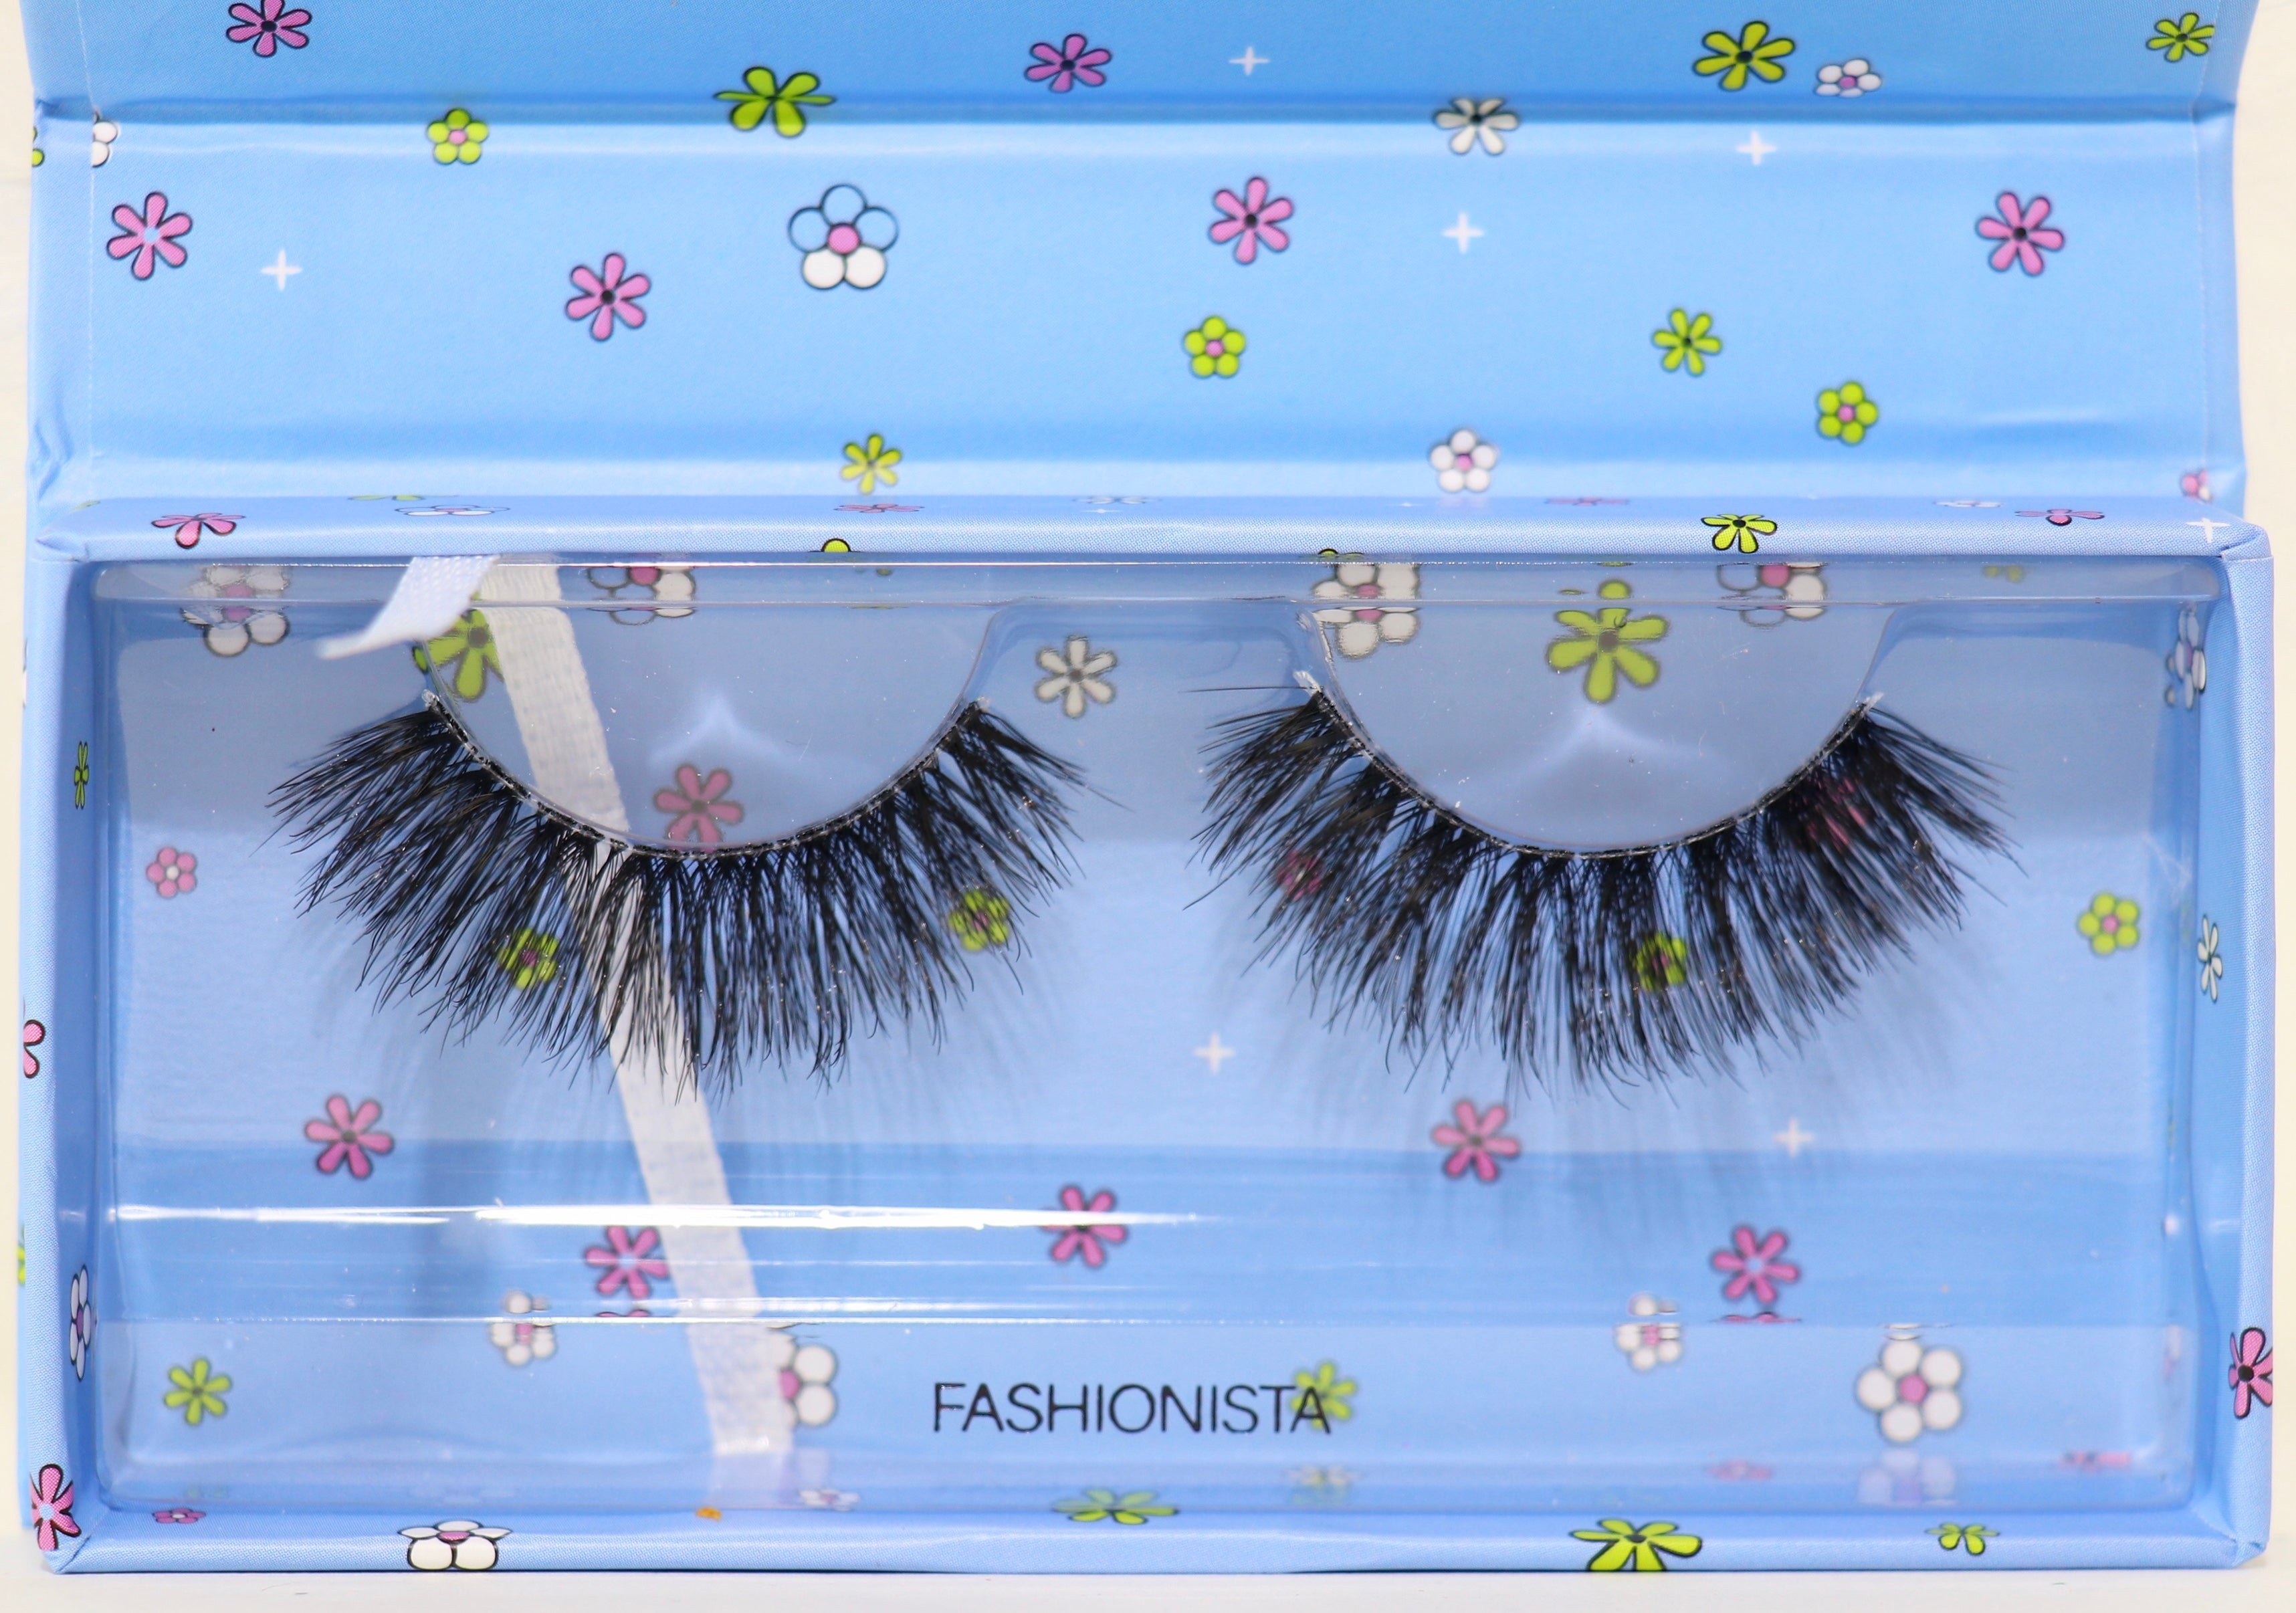 Fashionista Lashes - Rollin' with the Homies